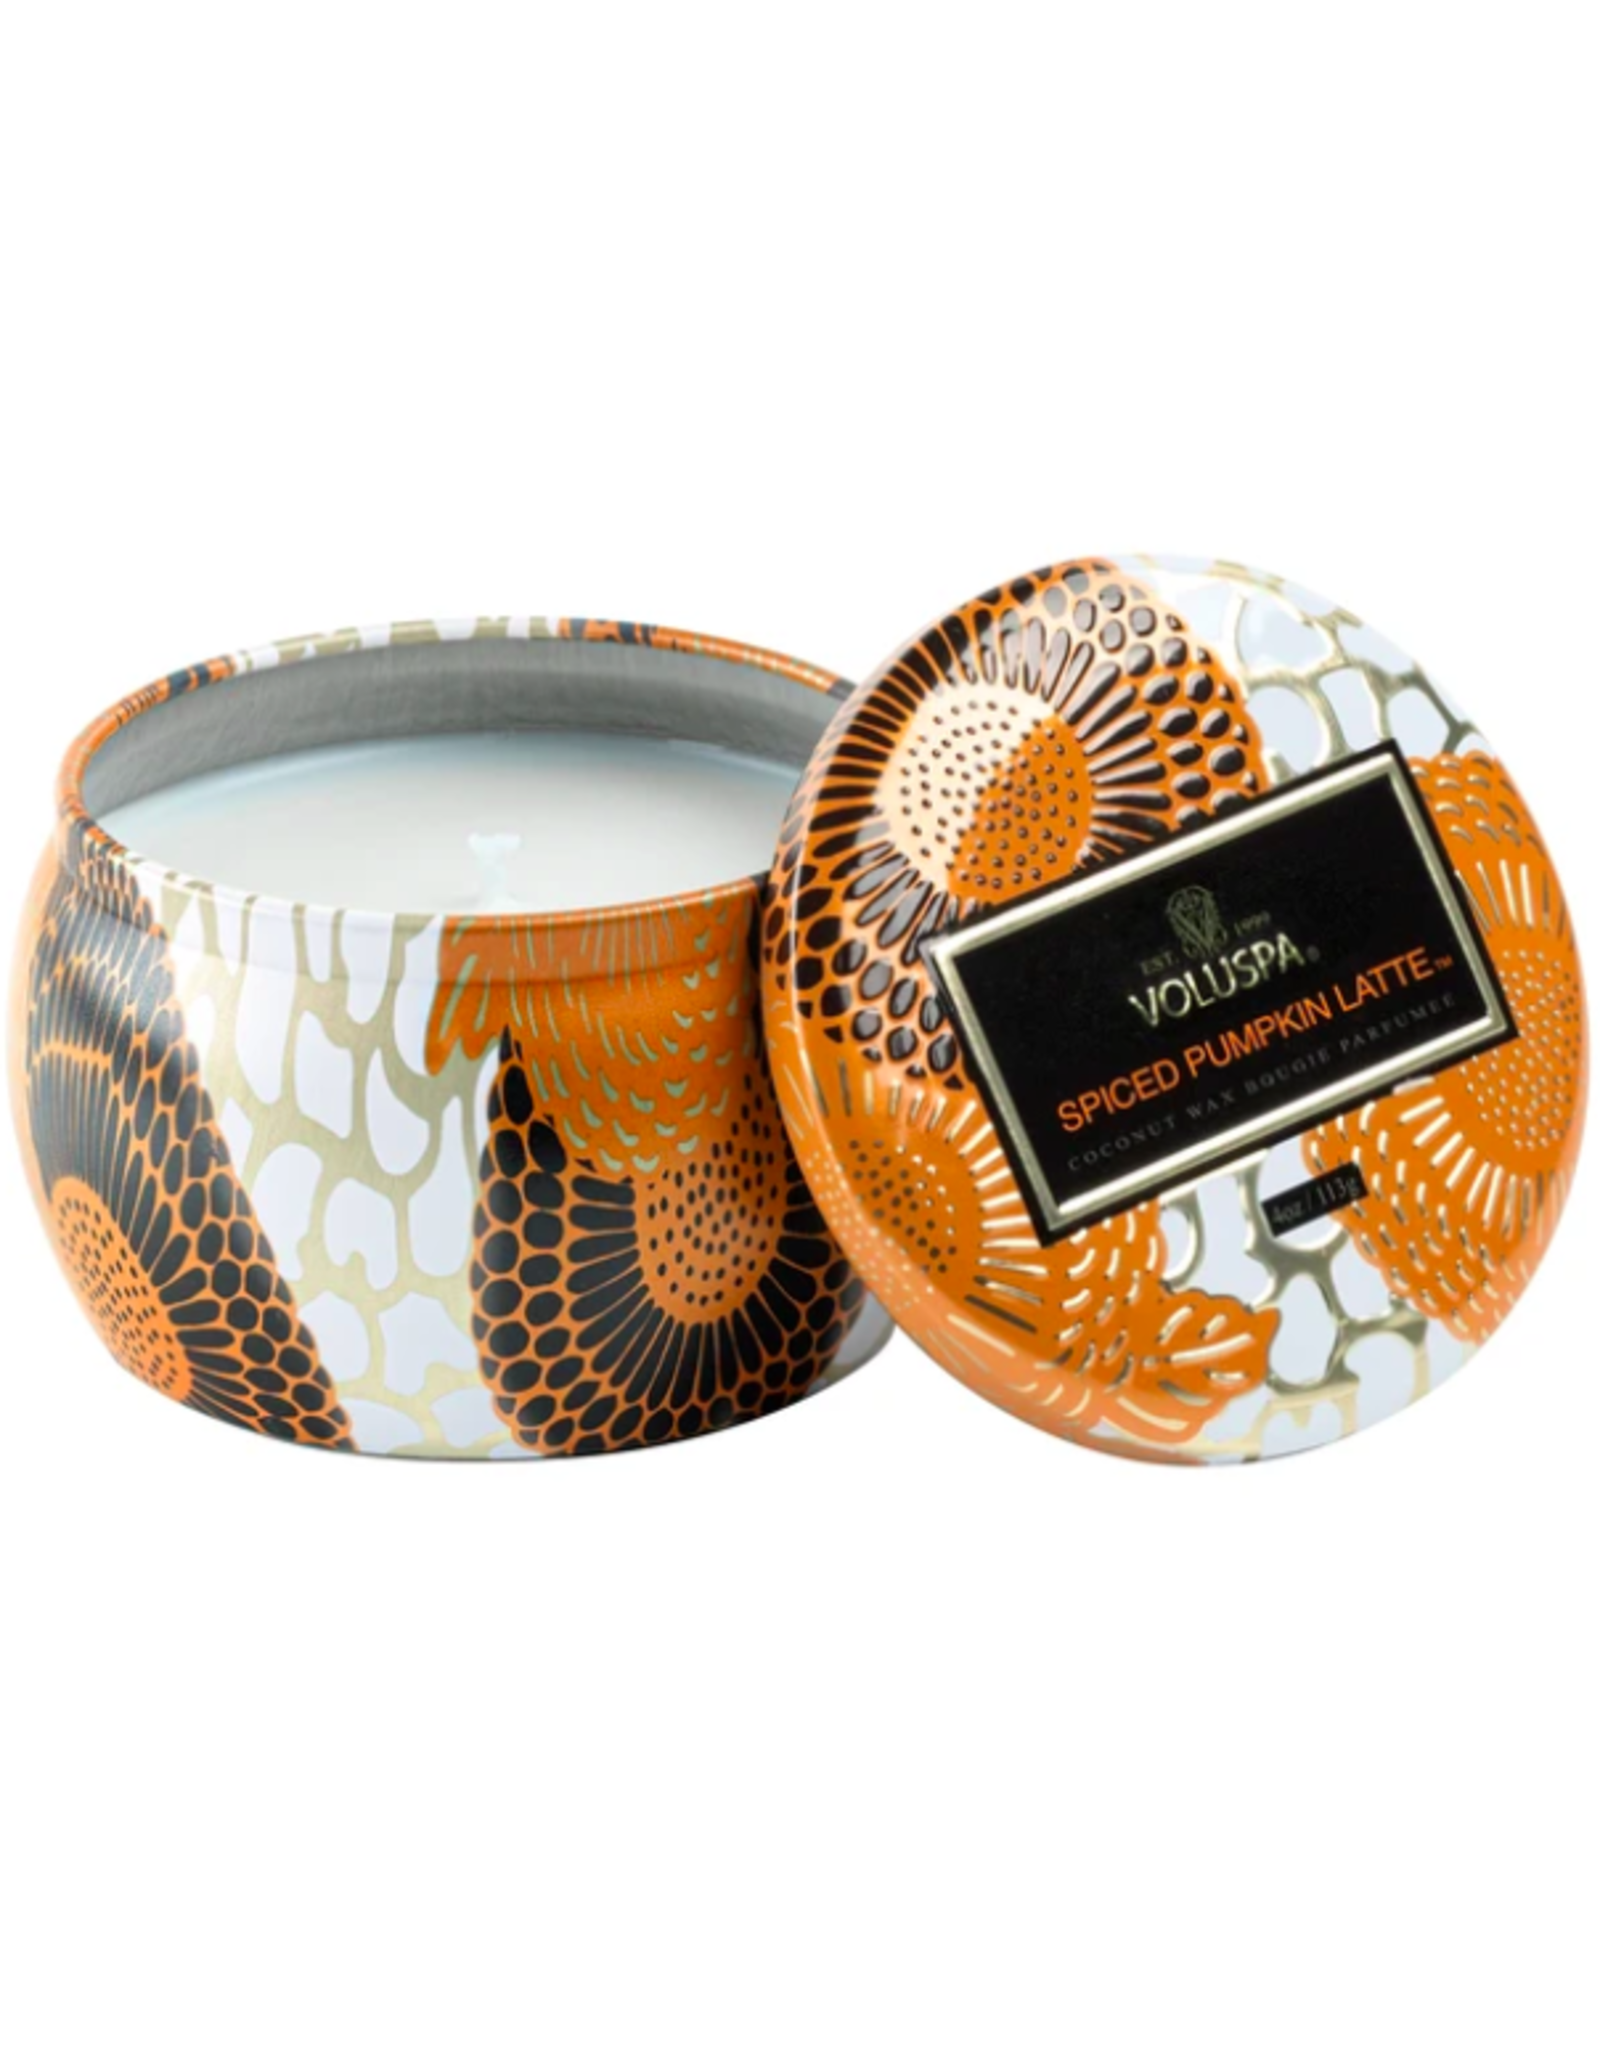 Voluspa Spiced Pumpkin Latte Petite Decorative Tin